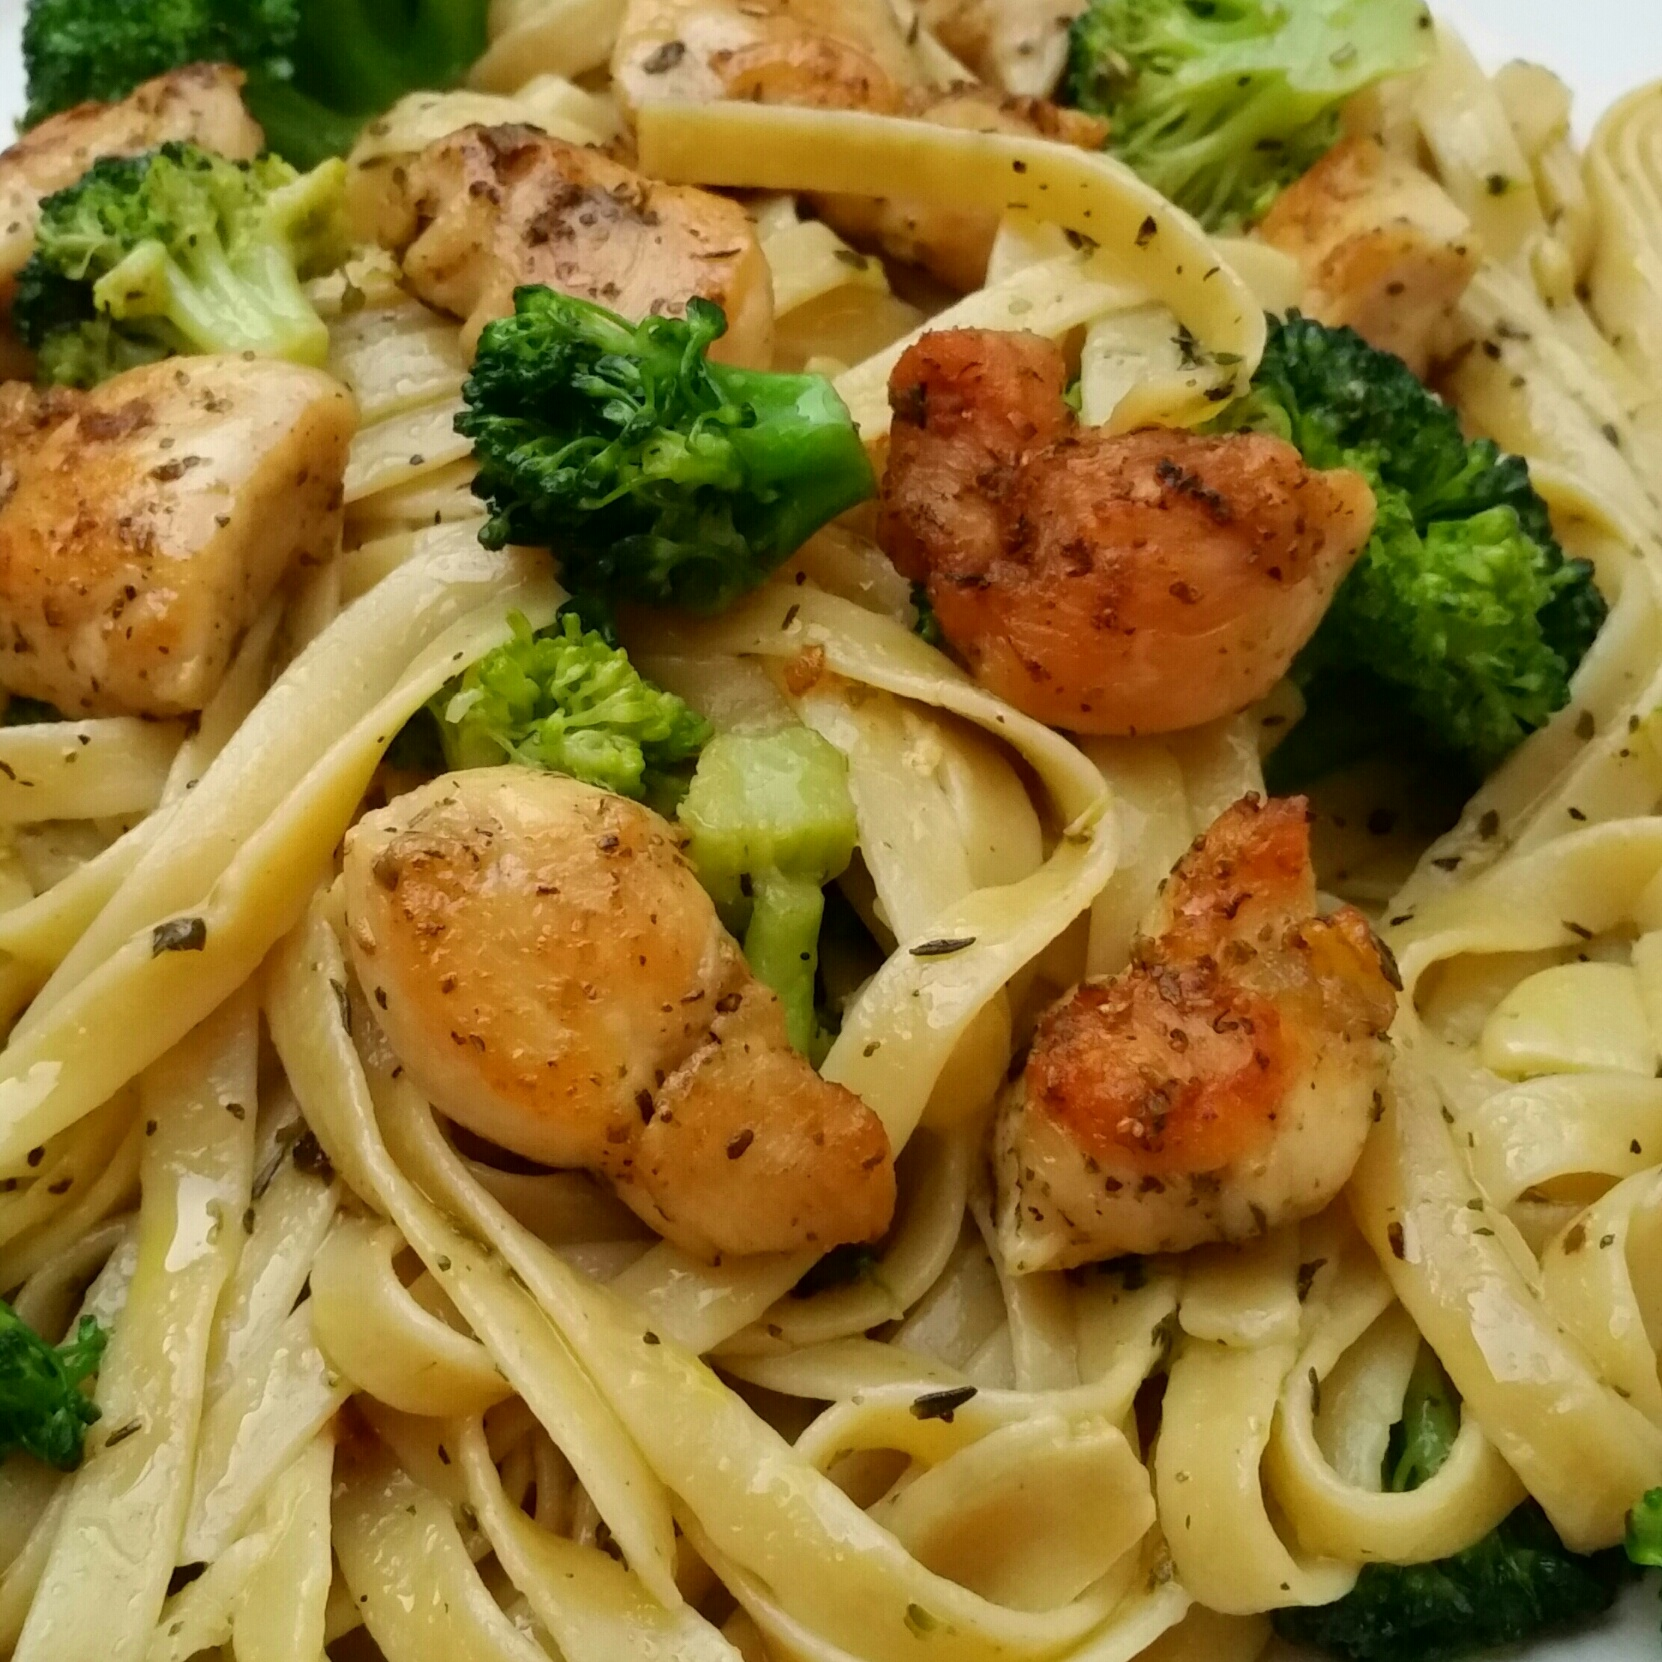 Grilled Chicken w/ Broccoli, Garlic, and Olive Oil Pasta